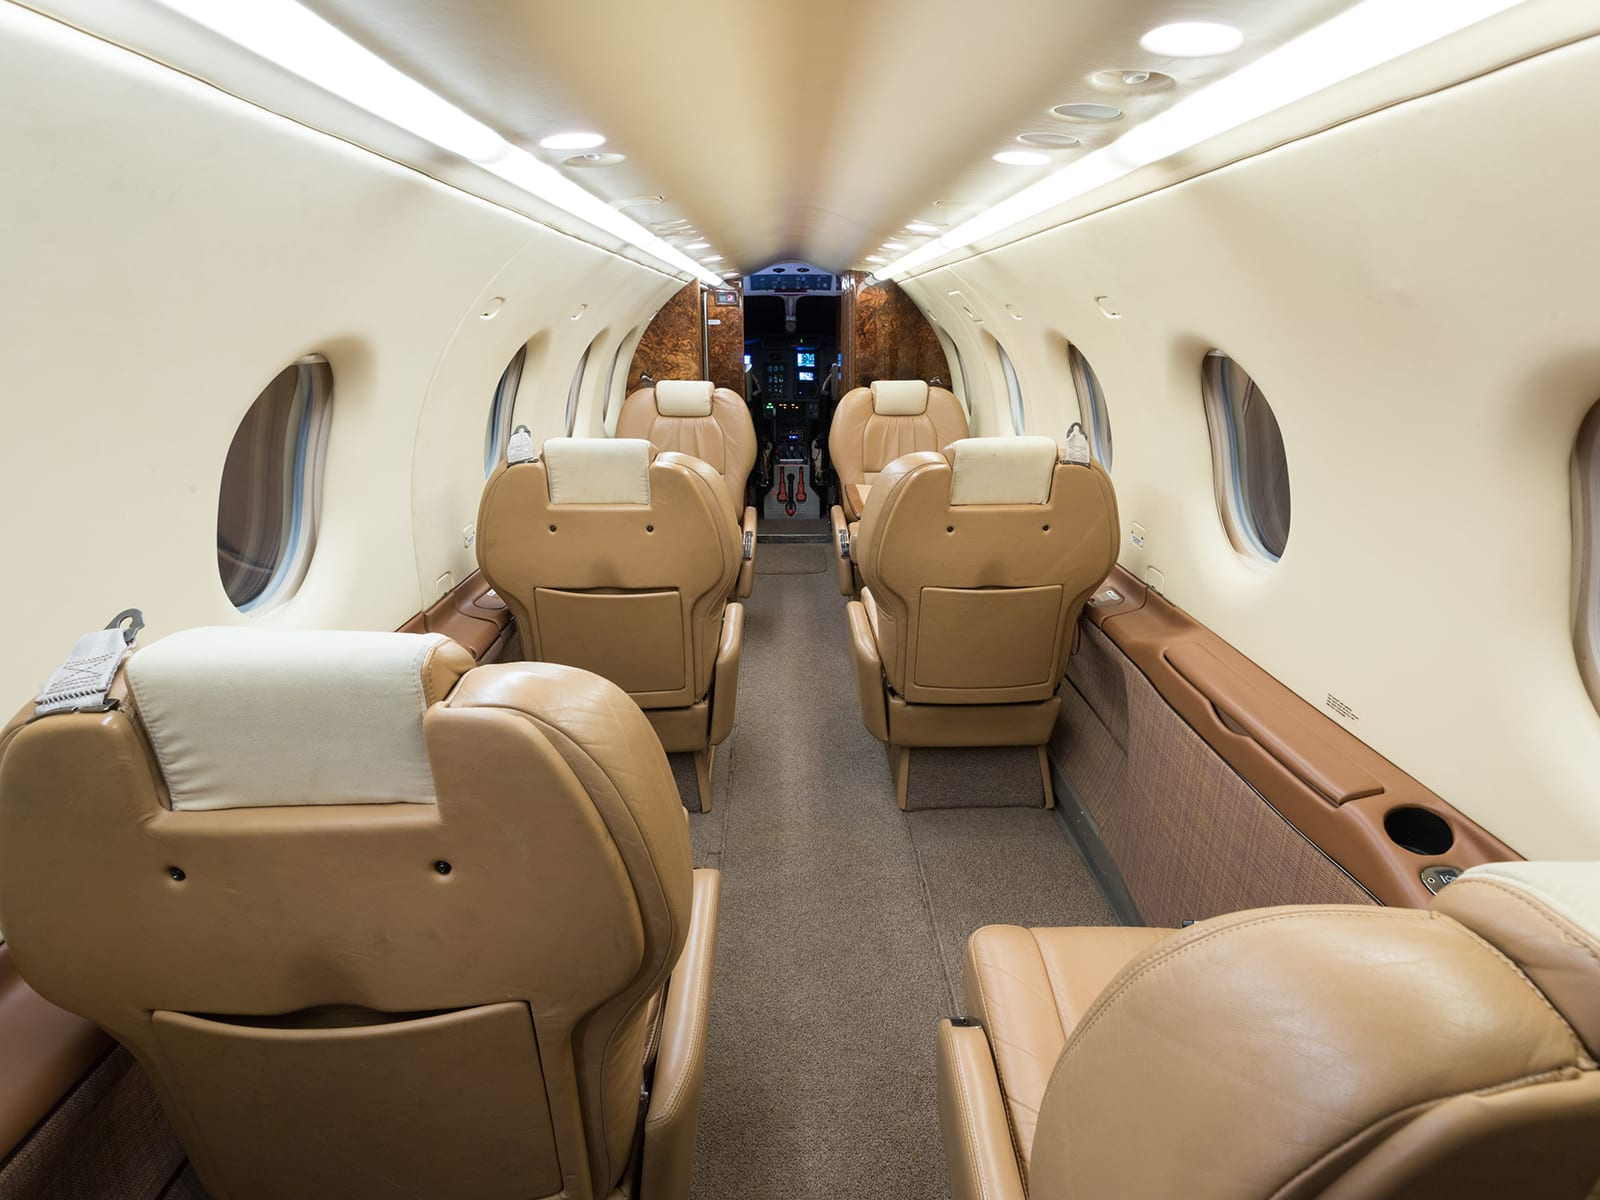 The inside of a Priority Jet Pilatus Pc-12